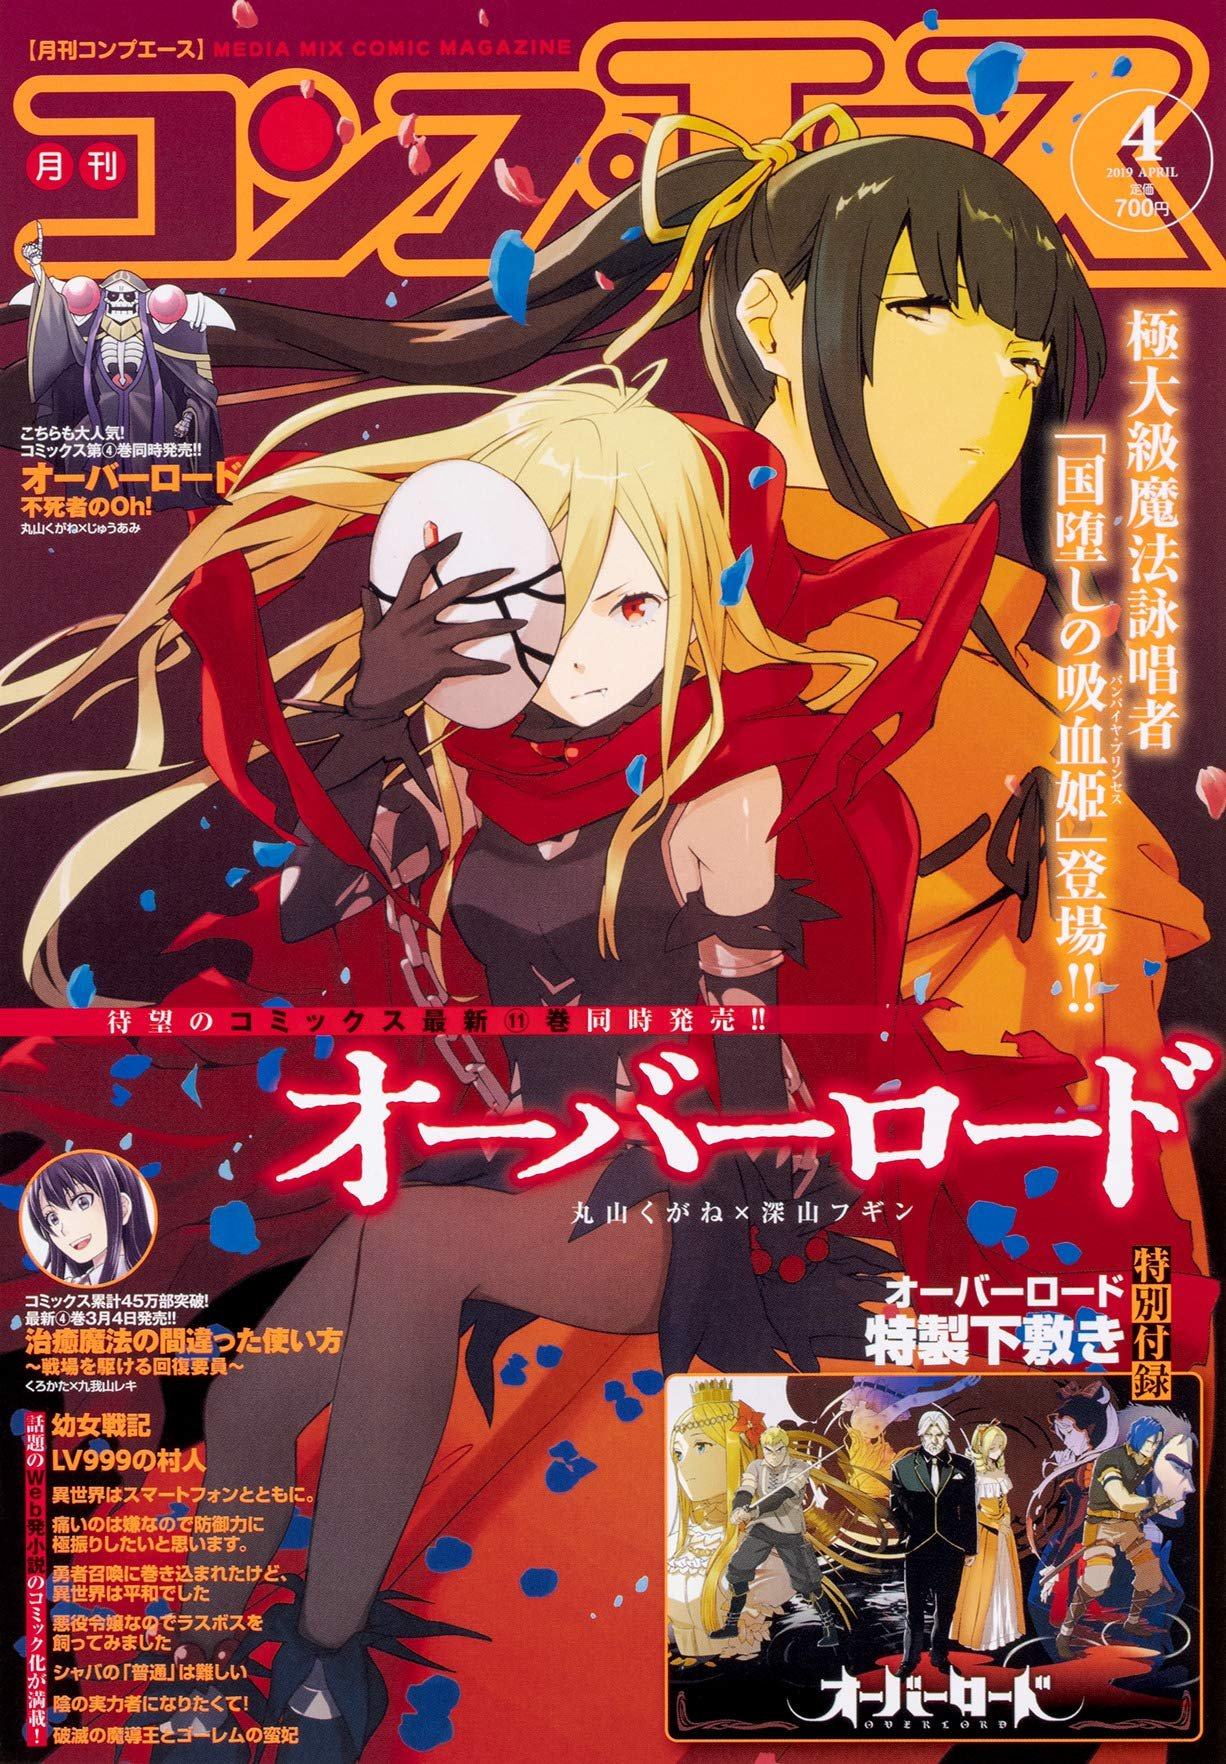 Comp Ace Issue 159 (newsstand) (April 2019)